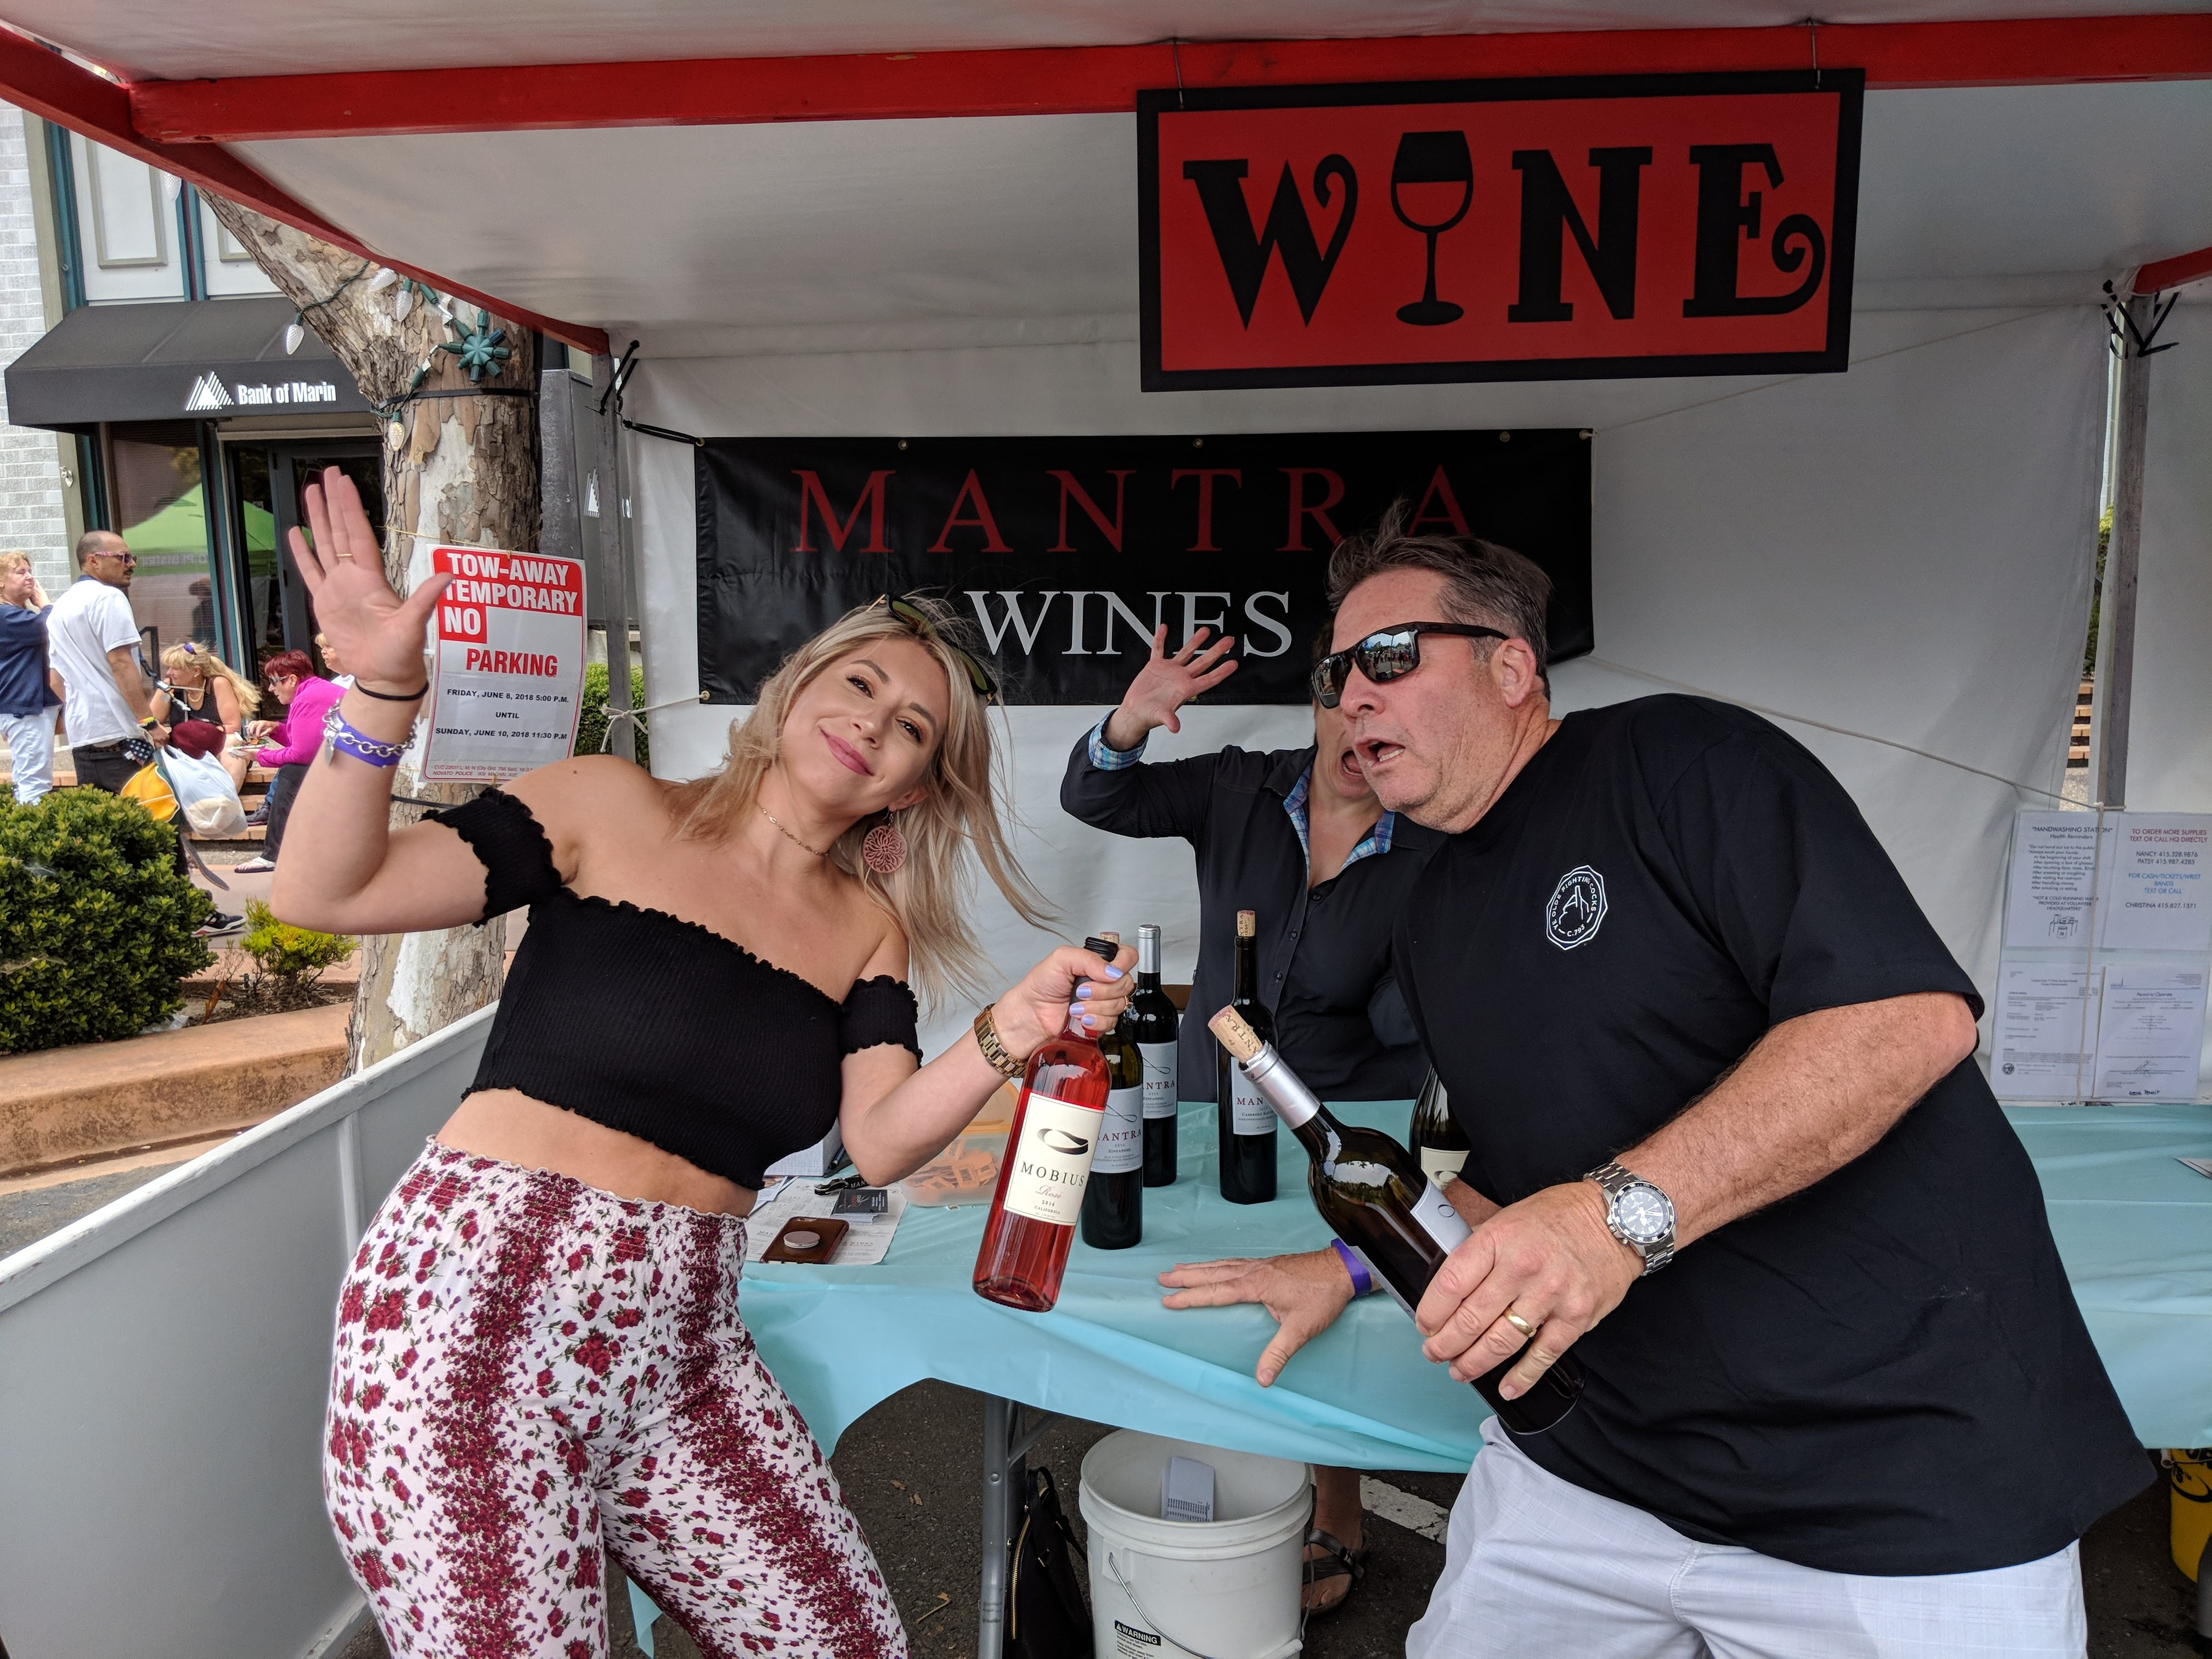 mantra wine and their staff help volunteer at the Novato Chamber Marin County Art and Wine Festival